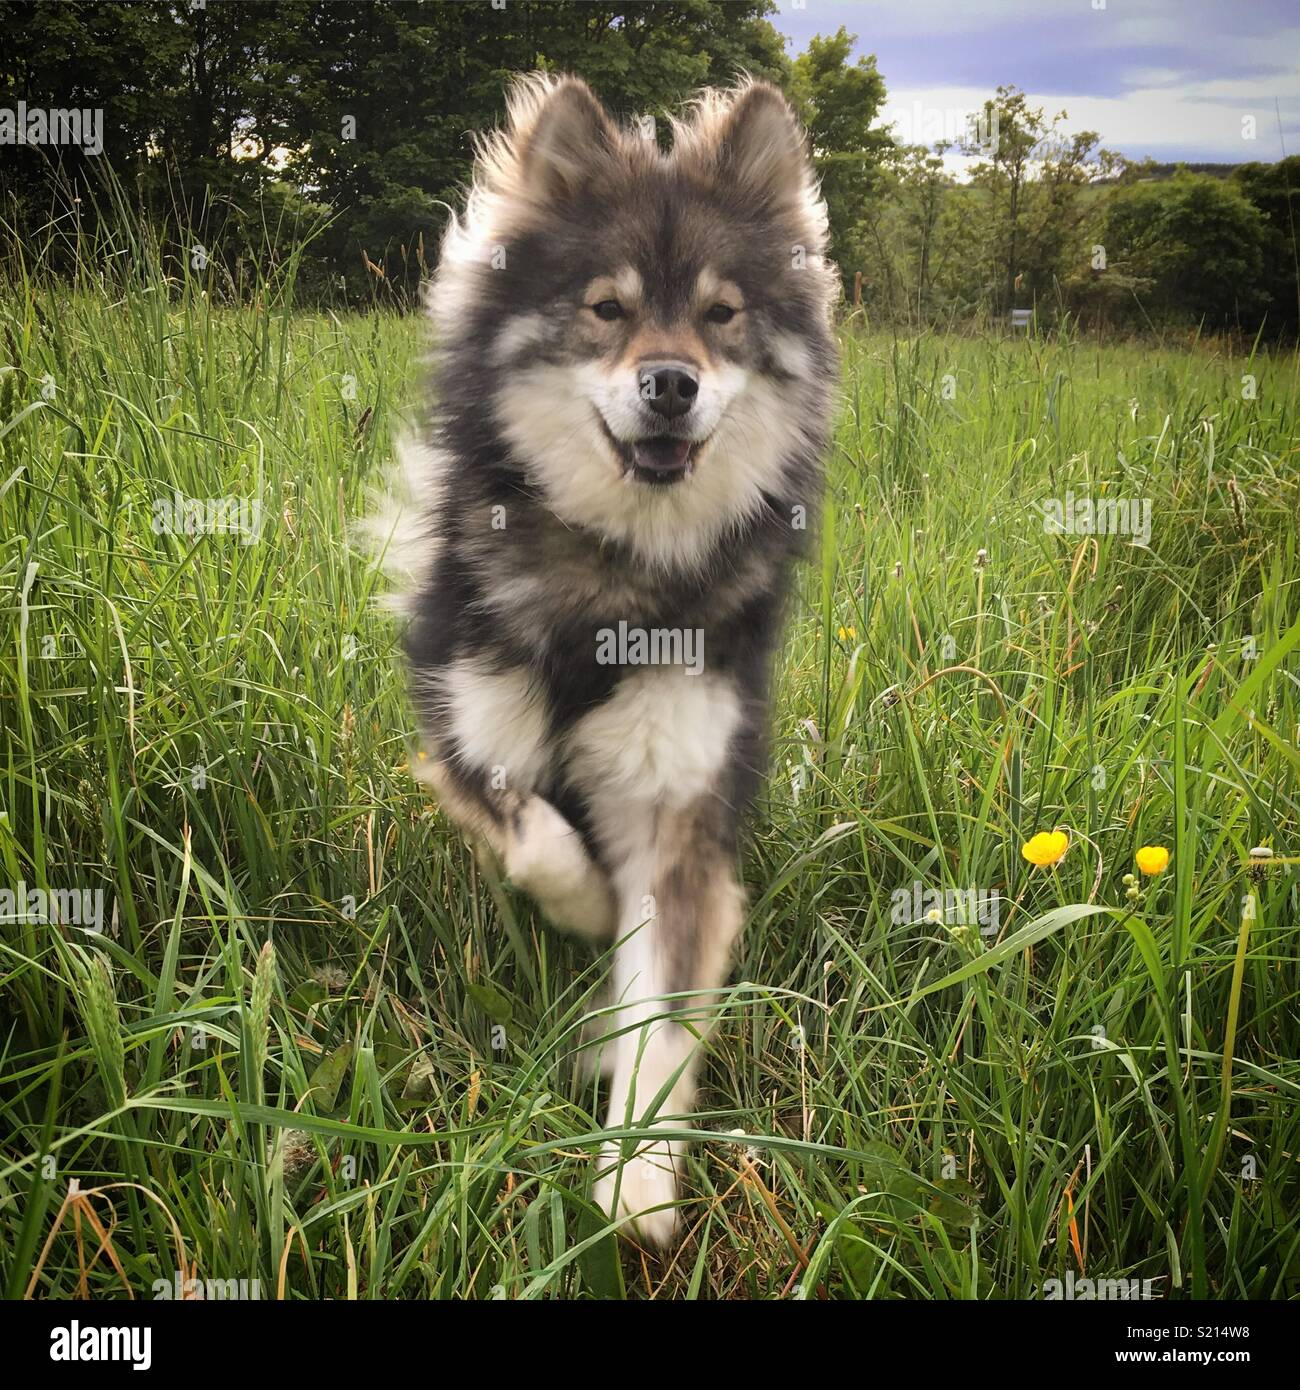 Fluffy dog running through the meadow - Stock Image